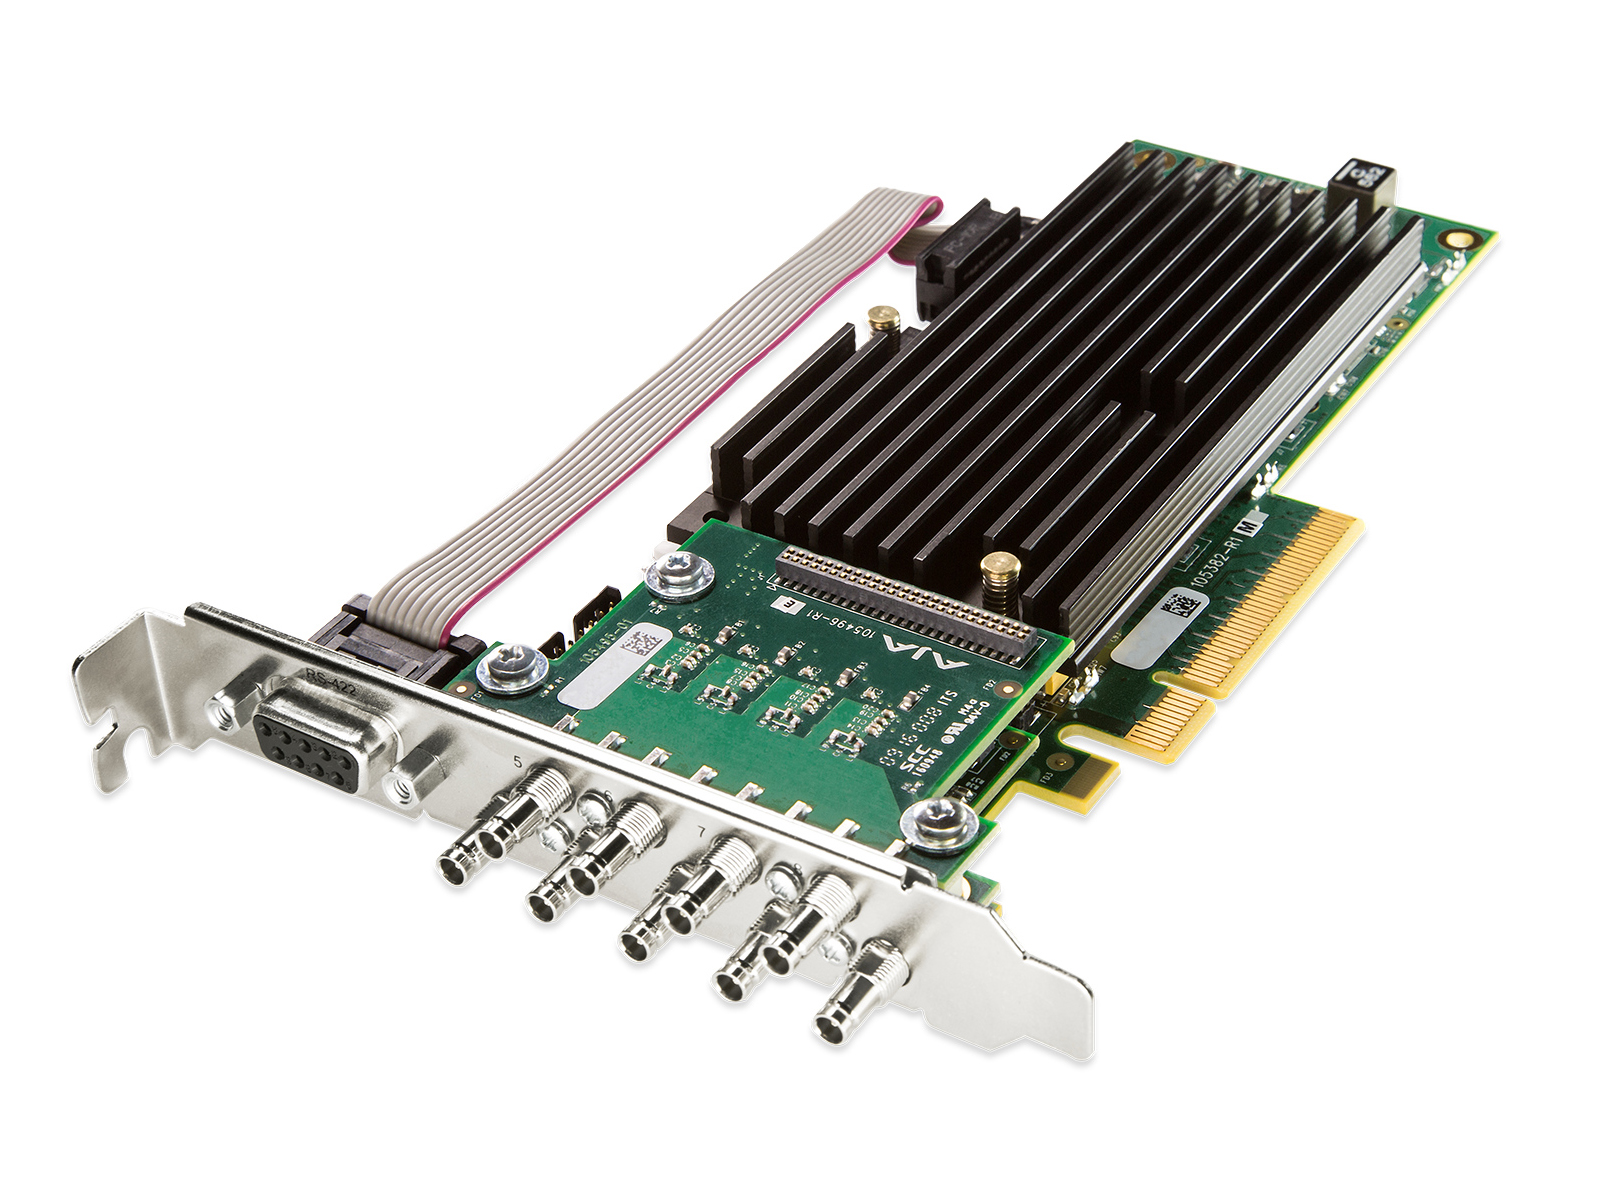 AJA CRV88-9-T-NF Corvid 88 with standard profile PCIe bracket and passive heat sink/includes 5x 101999-02 cables